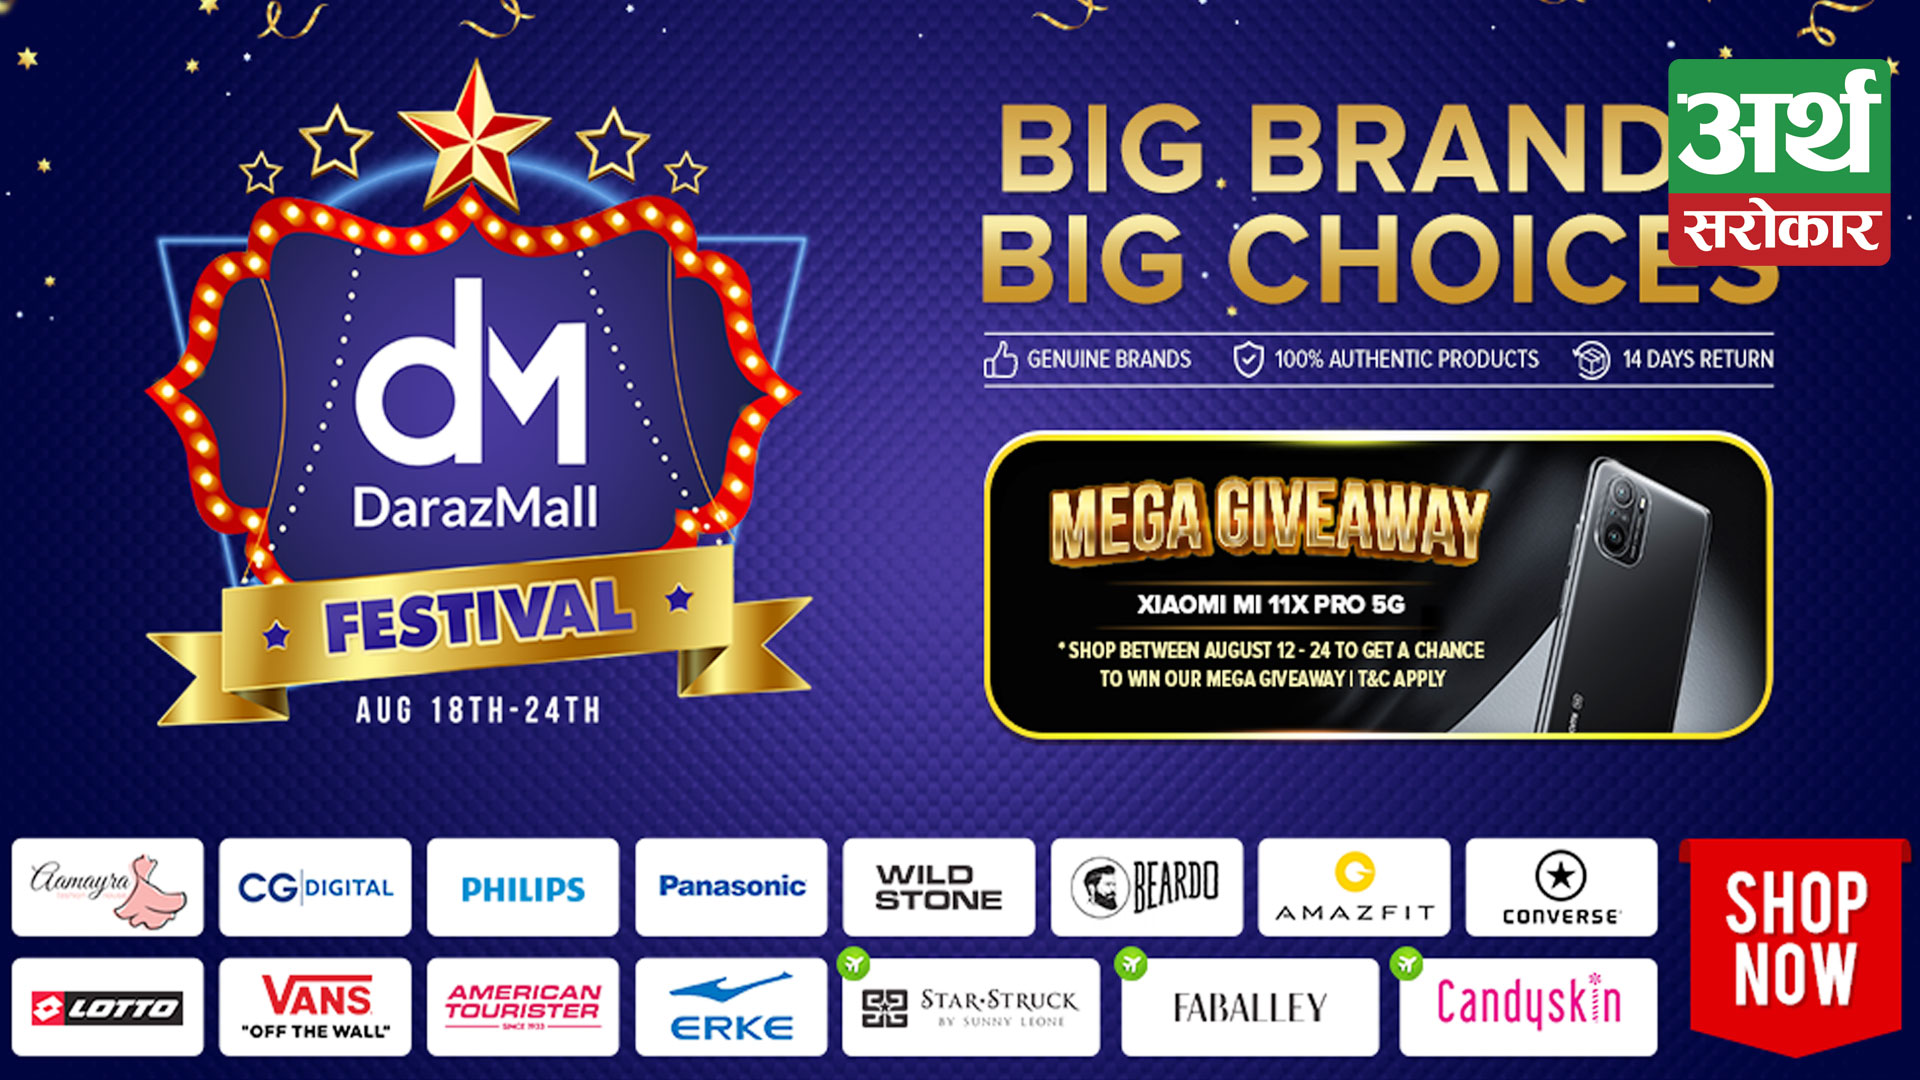 DarazMall Festival Announced-Amazing Deals and Discounts on Premium National & International Brands